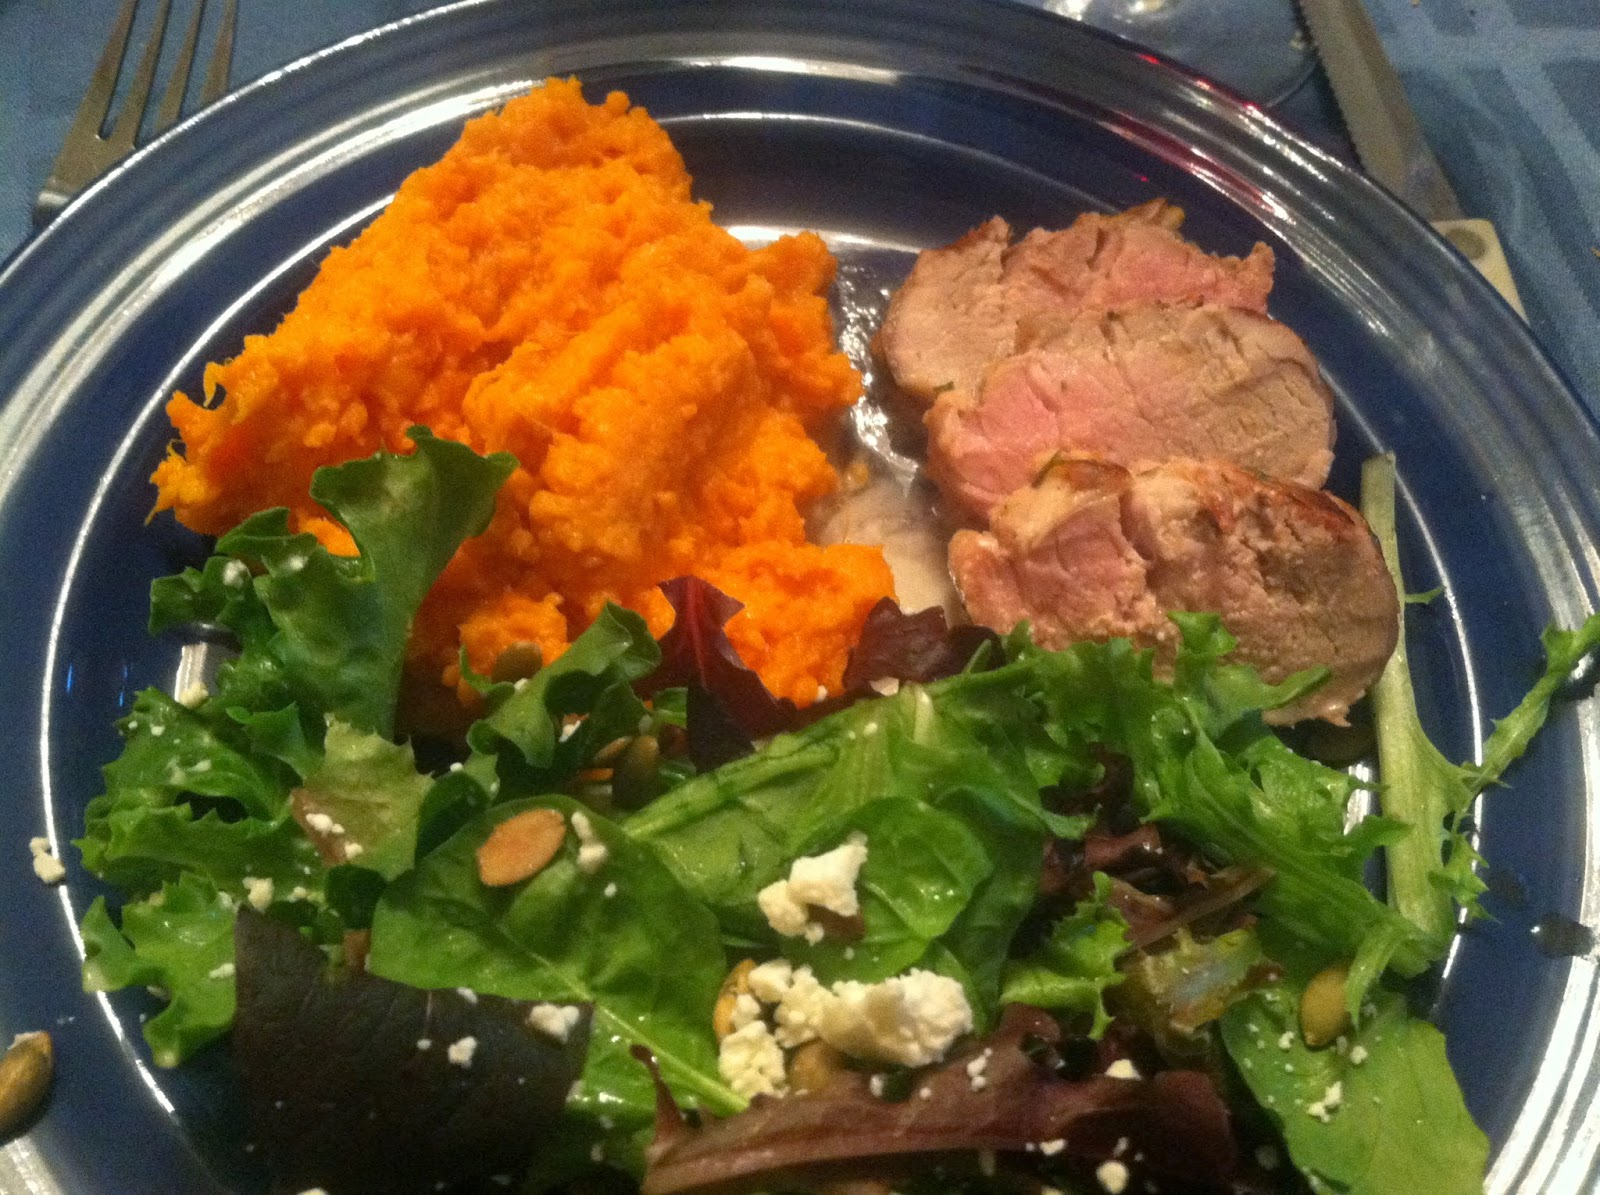 Cilantro Lime Grilled Pork Tenderloin with Sweet Potatoes and Salad. Cooking Chat recipe.